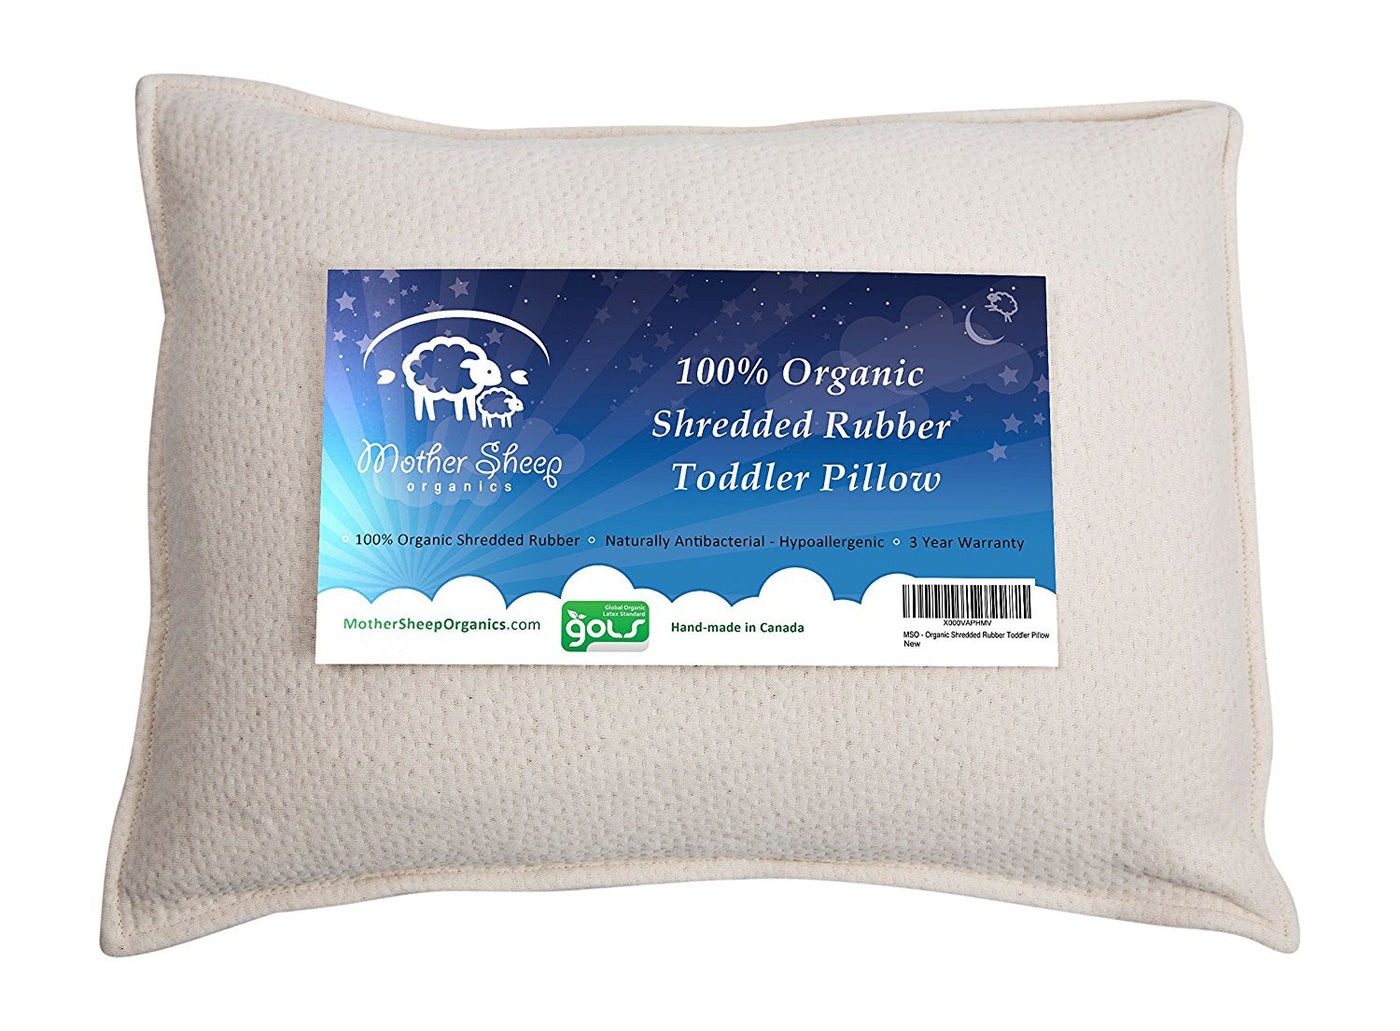 Toddler Pillow Shredded Rubber